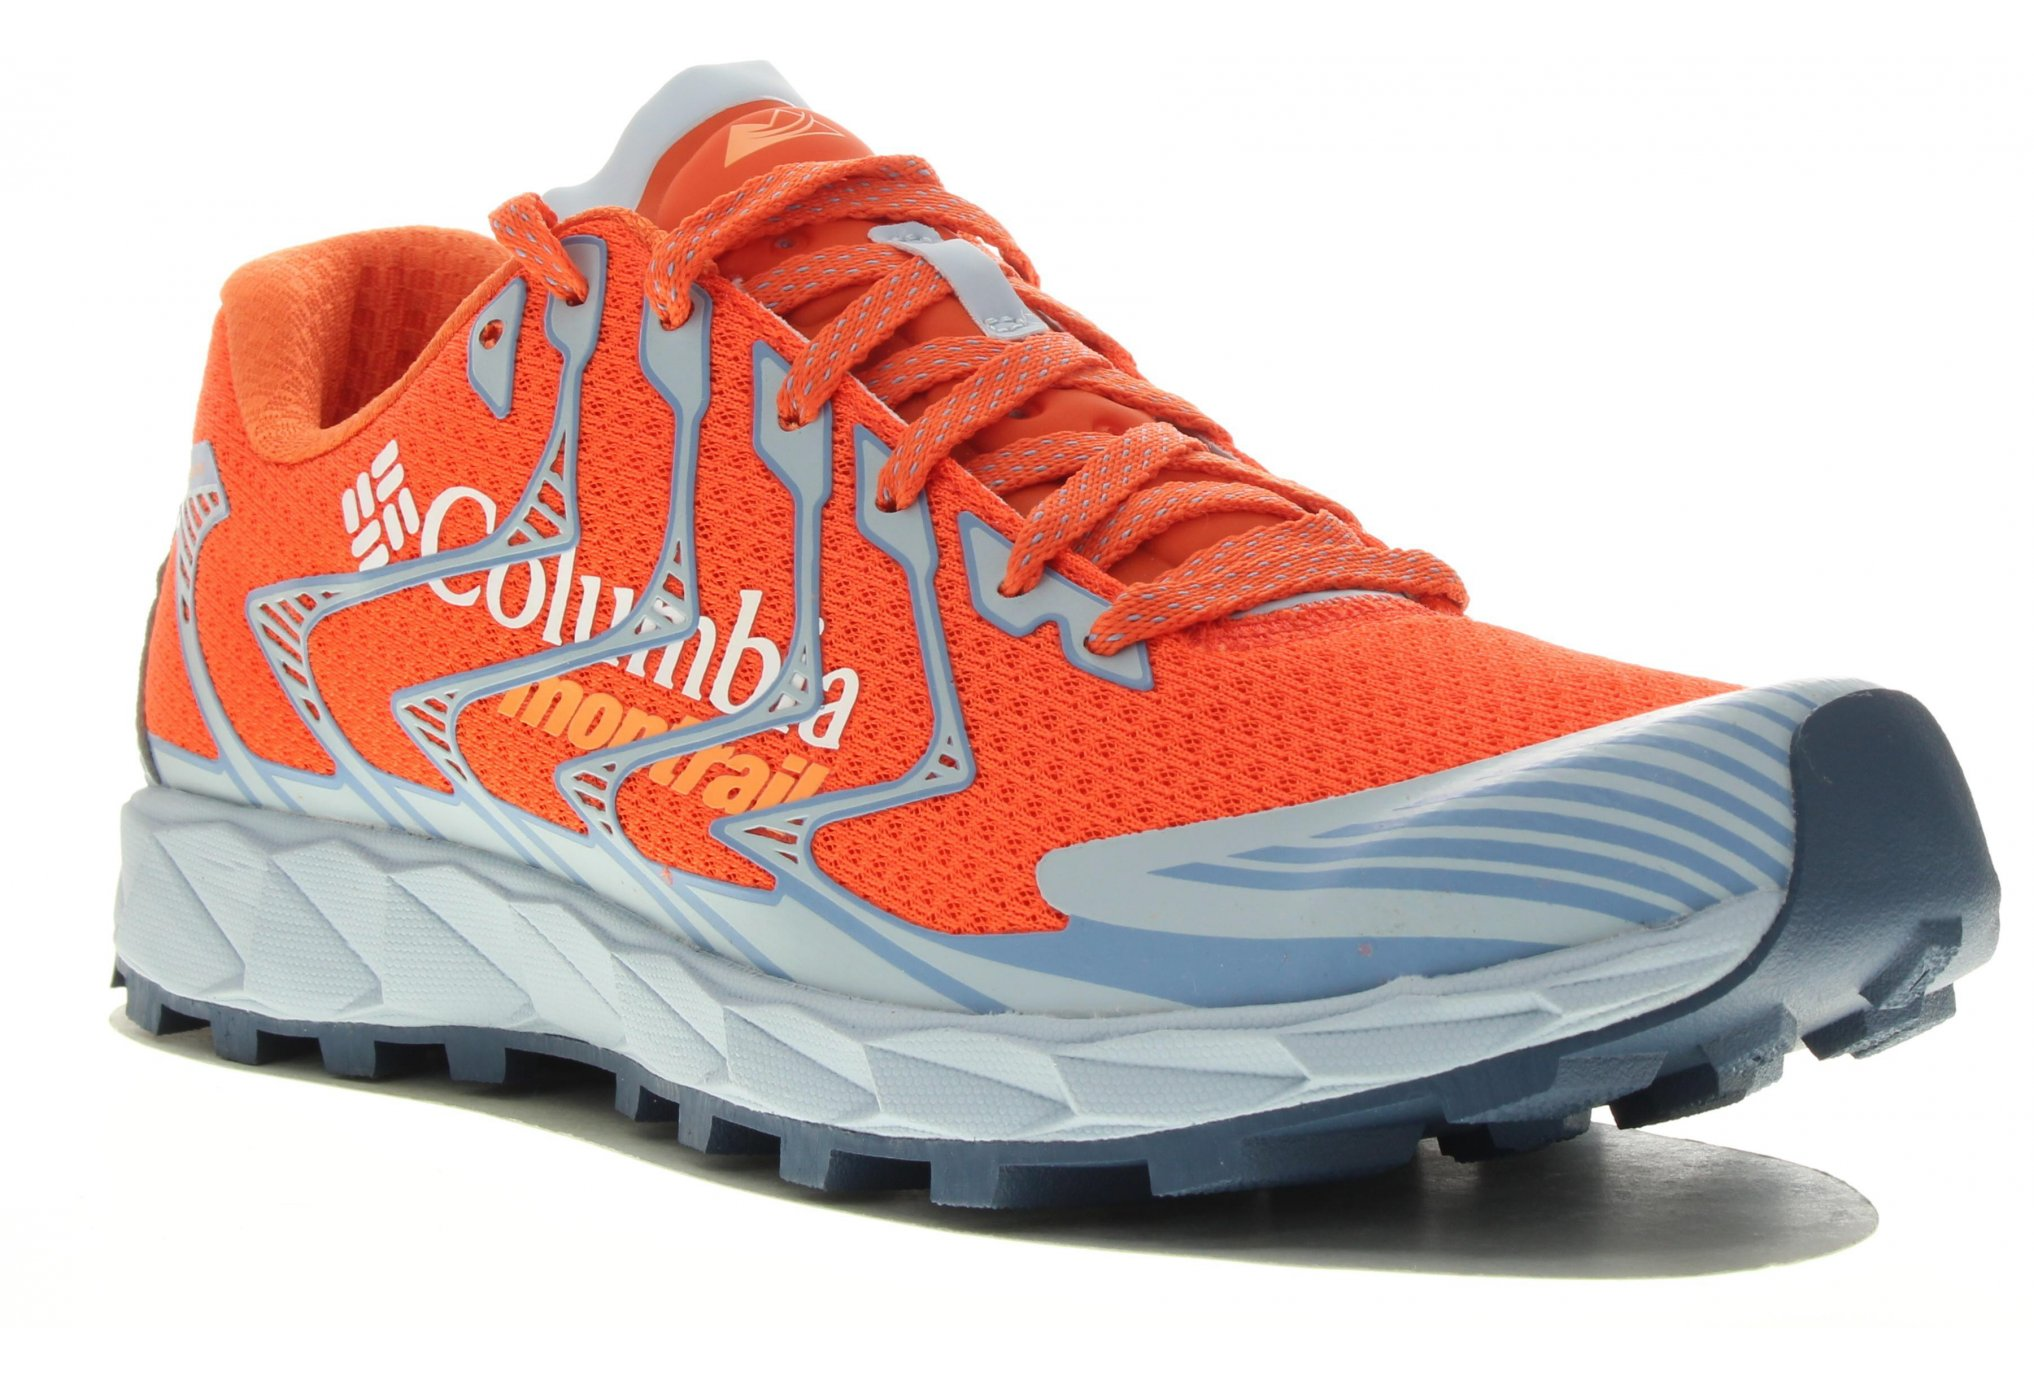 Columbia Montrail Rogue F.K.T. II Chaussures running femme